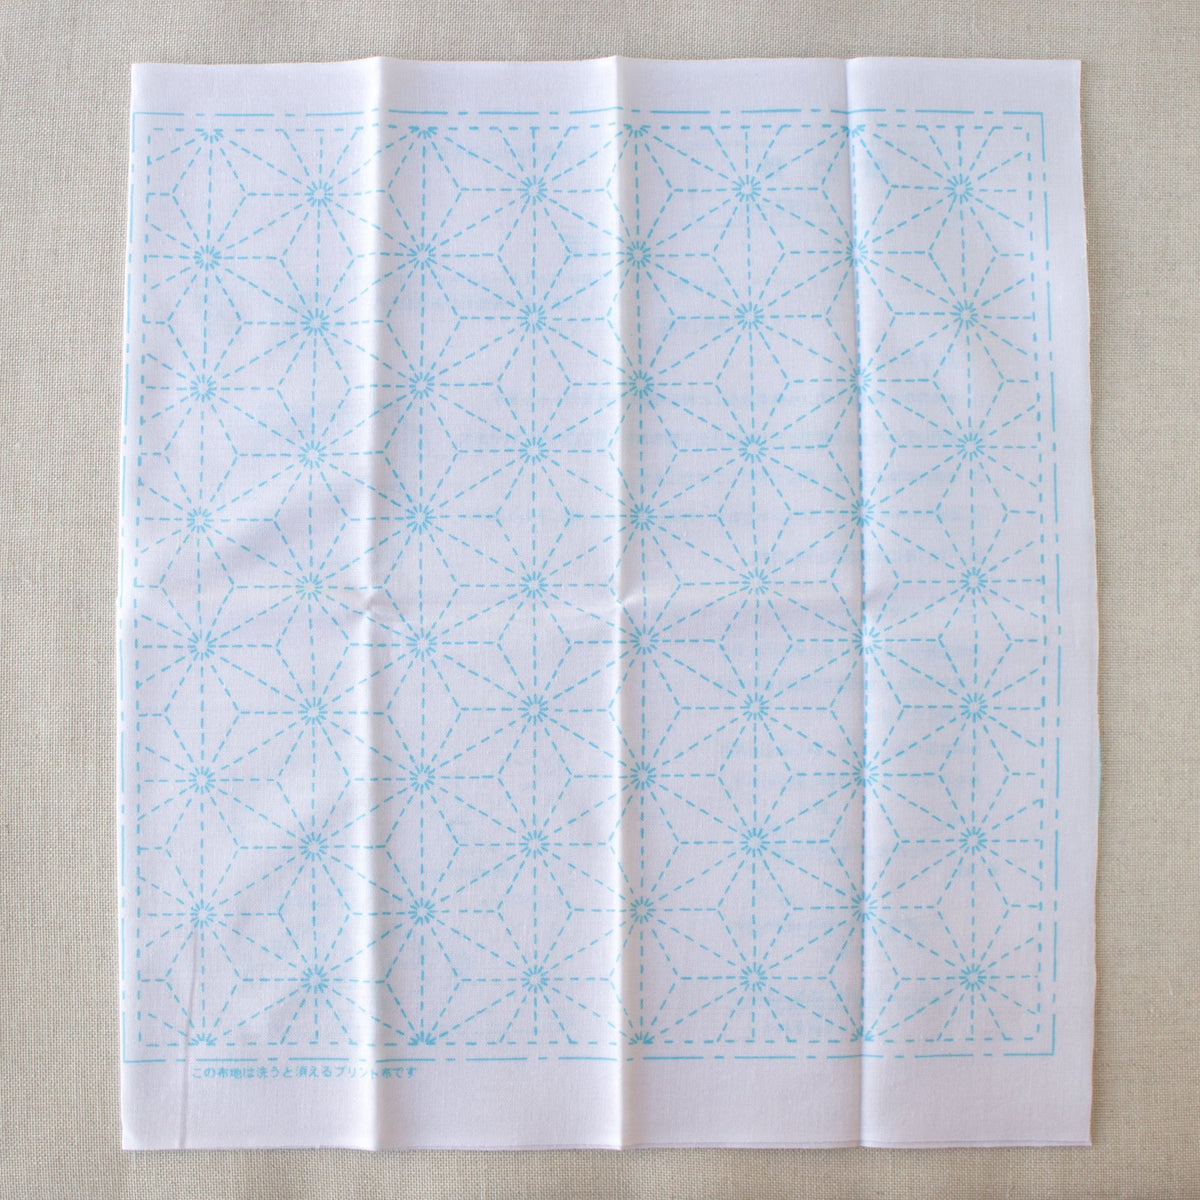 Japanese Sashiko White Sampler Cloth - Six Point Star